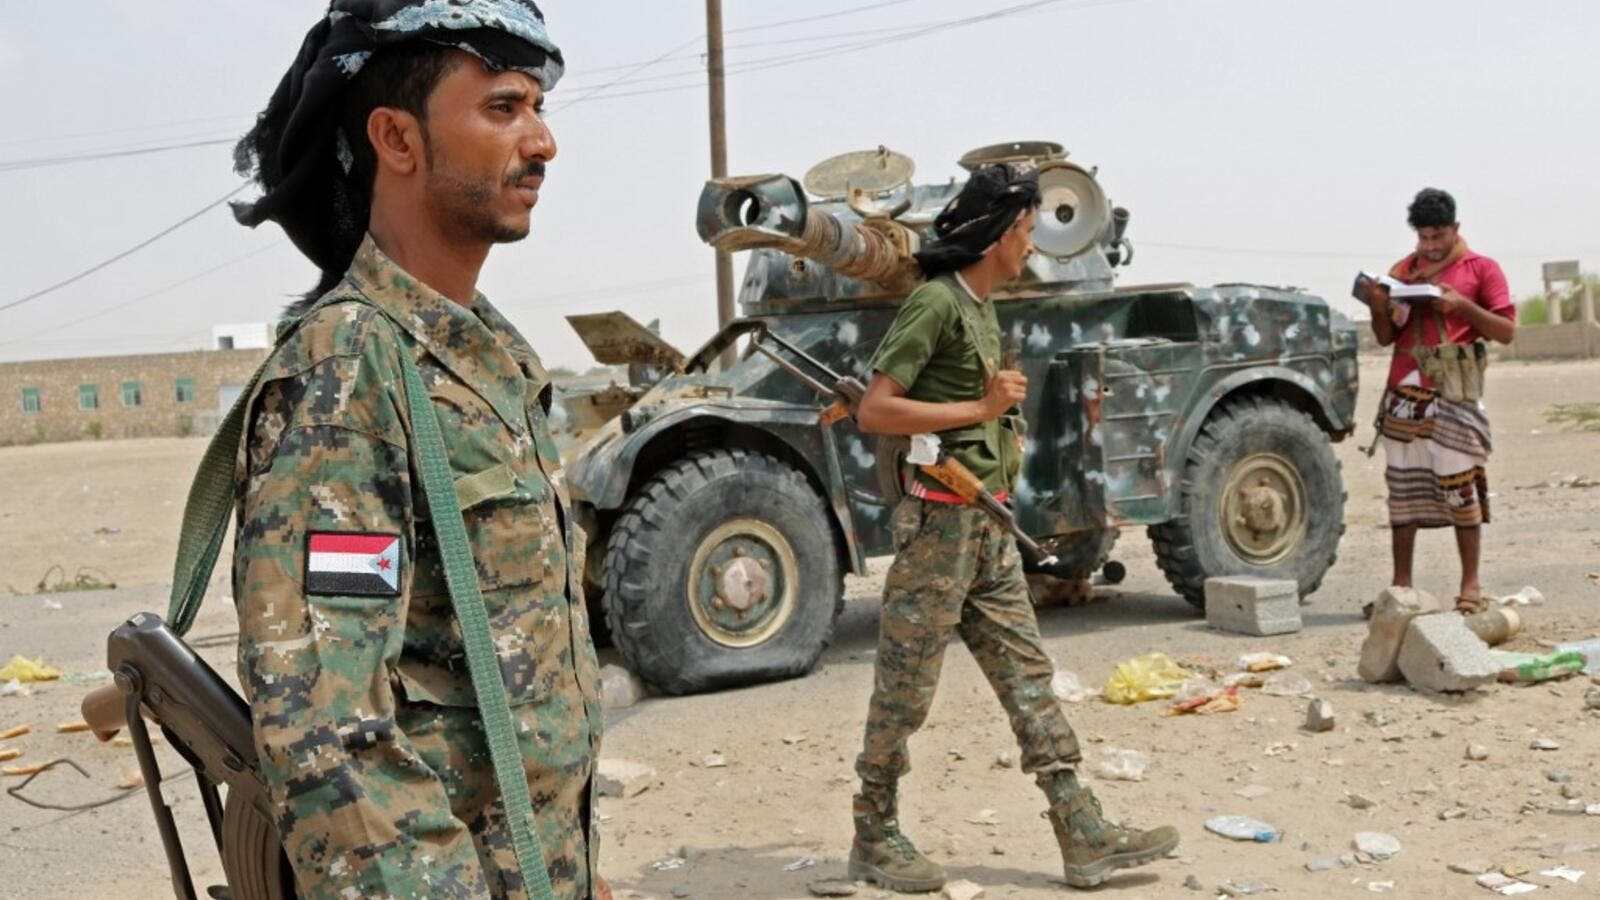 Fighters with the UAE-trained Security Belt Forces loyal to the pro-independence Southern Transitional Council (STC), gather near the south-central coastal city of Zinjibar in south-central Yemen, in the Abyan Governorate, on August 21, 2019. (AFP)